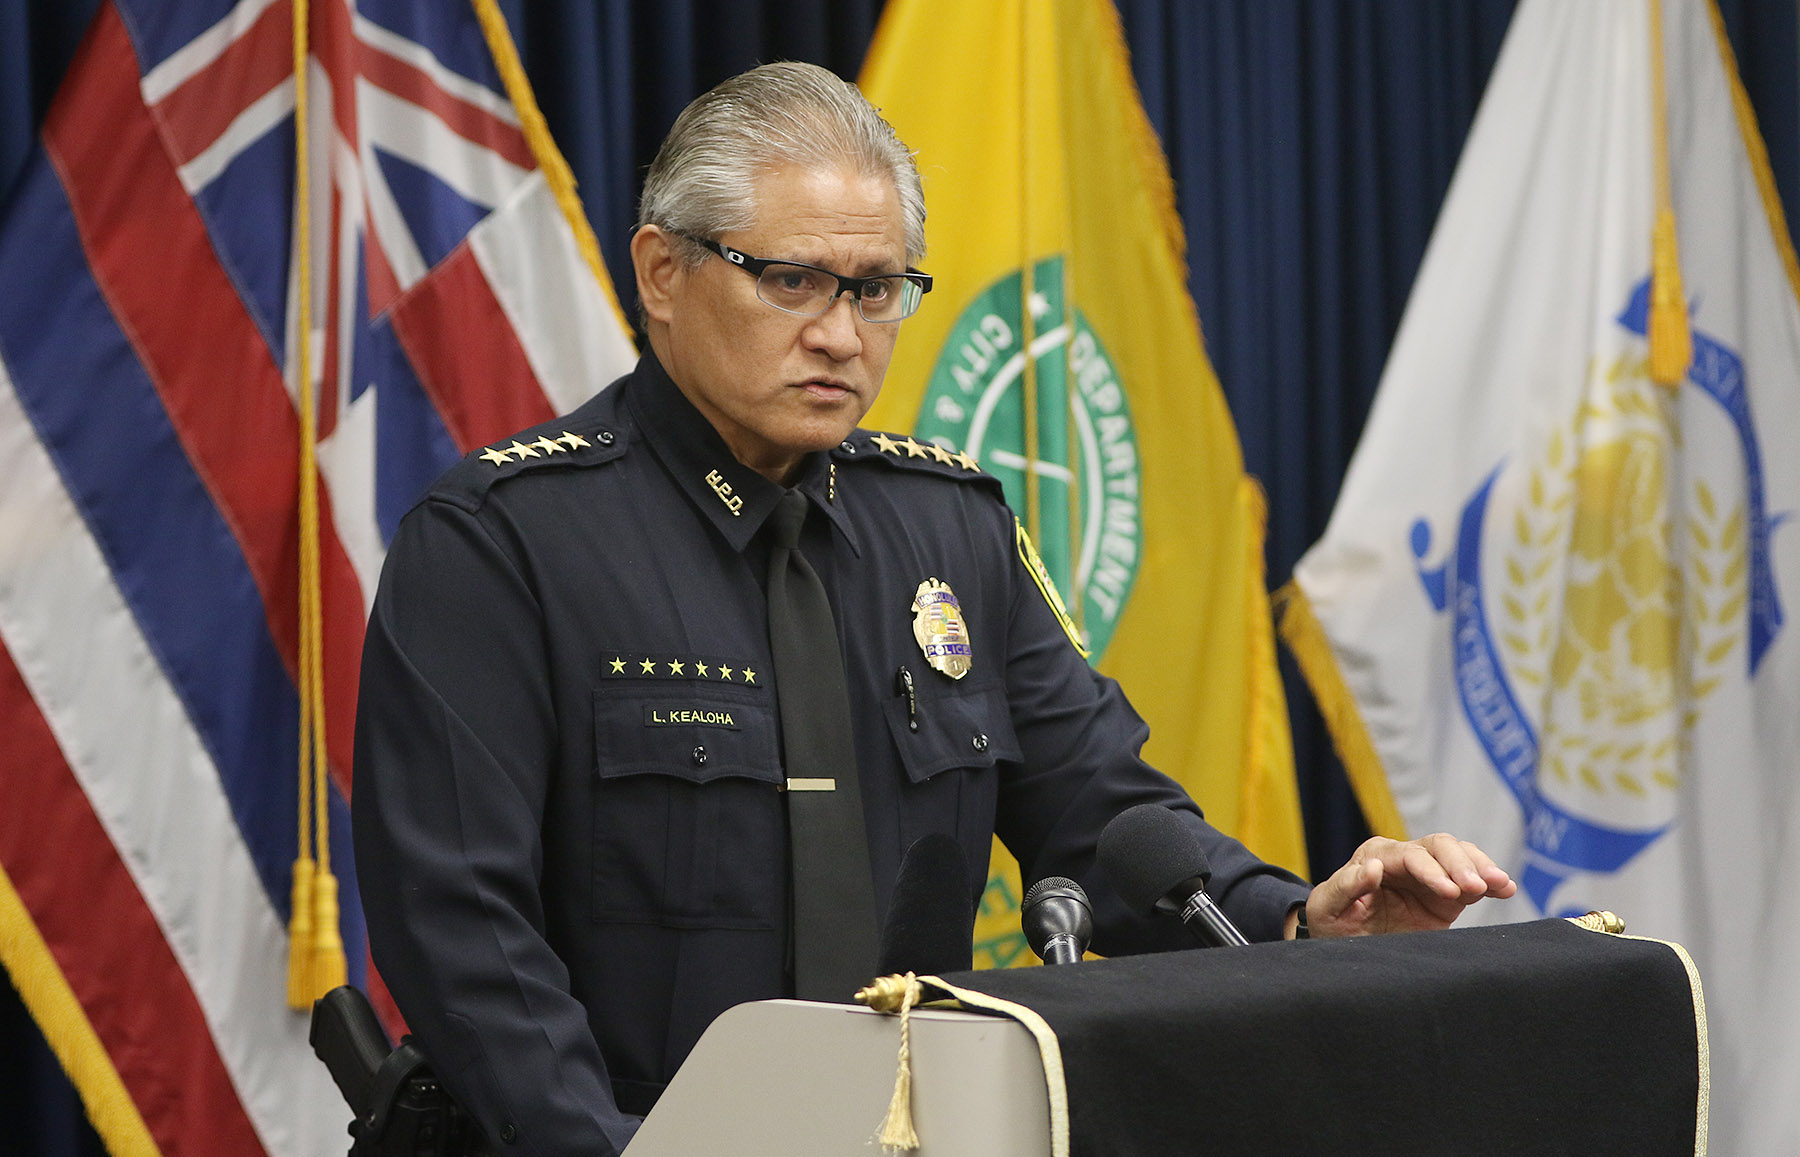 The honolulu police department needs a new leader for Bureau chief